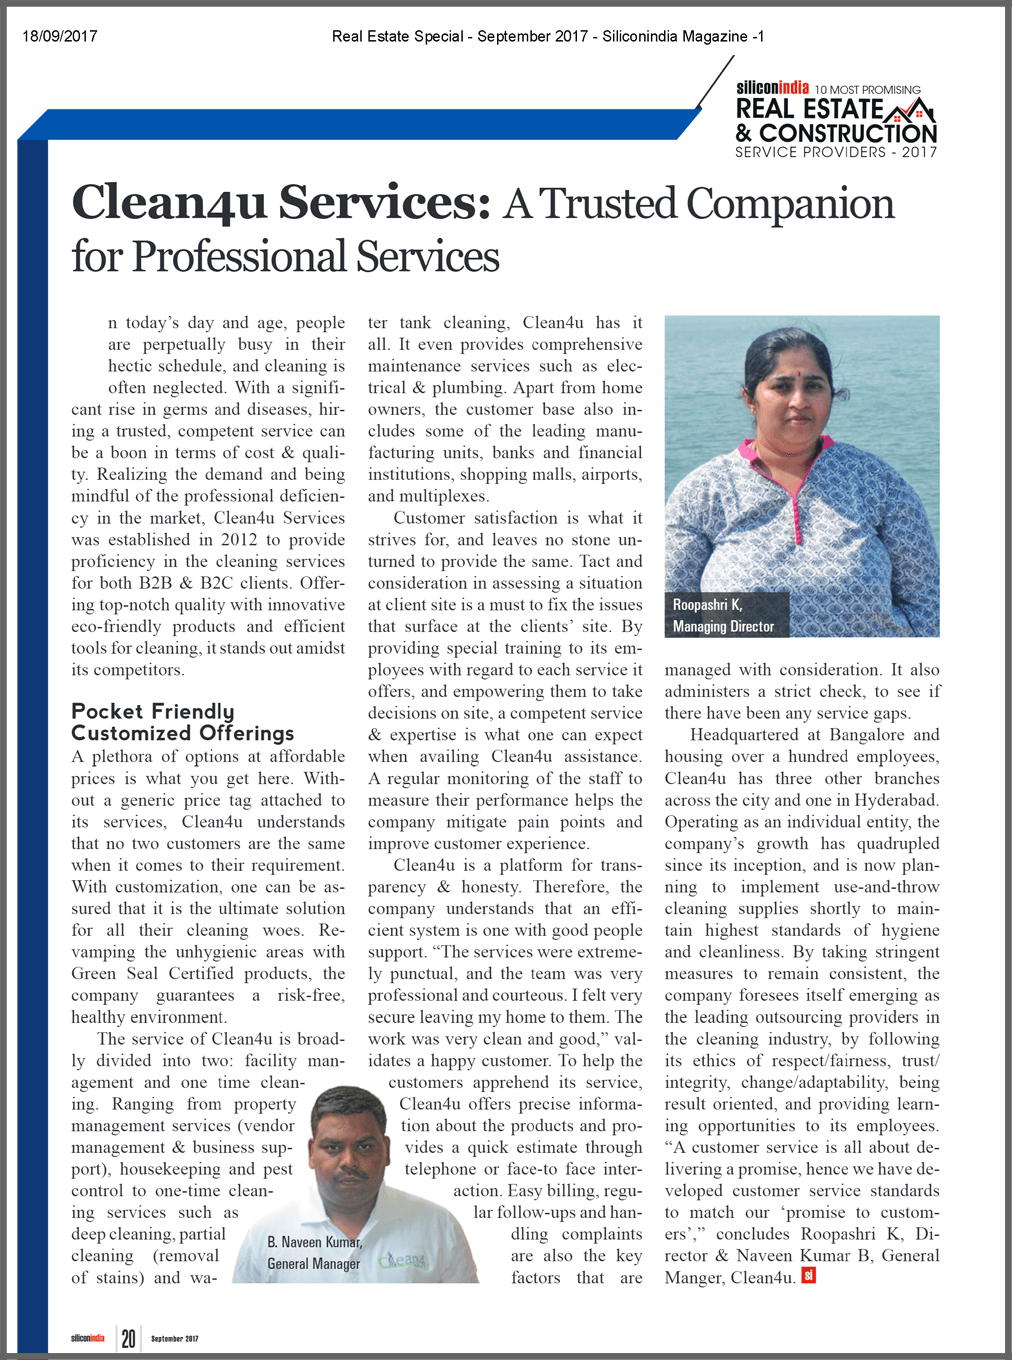 Real-Estate-Special-September-2017-Siliconindia-Magazine-Clean4u1